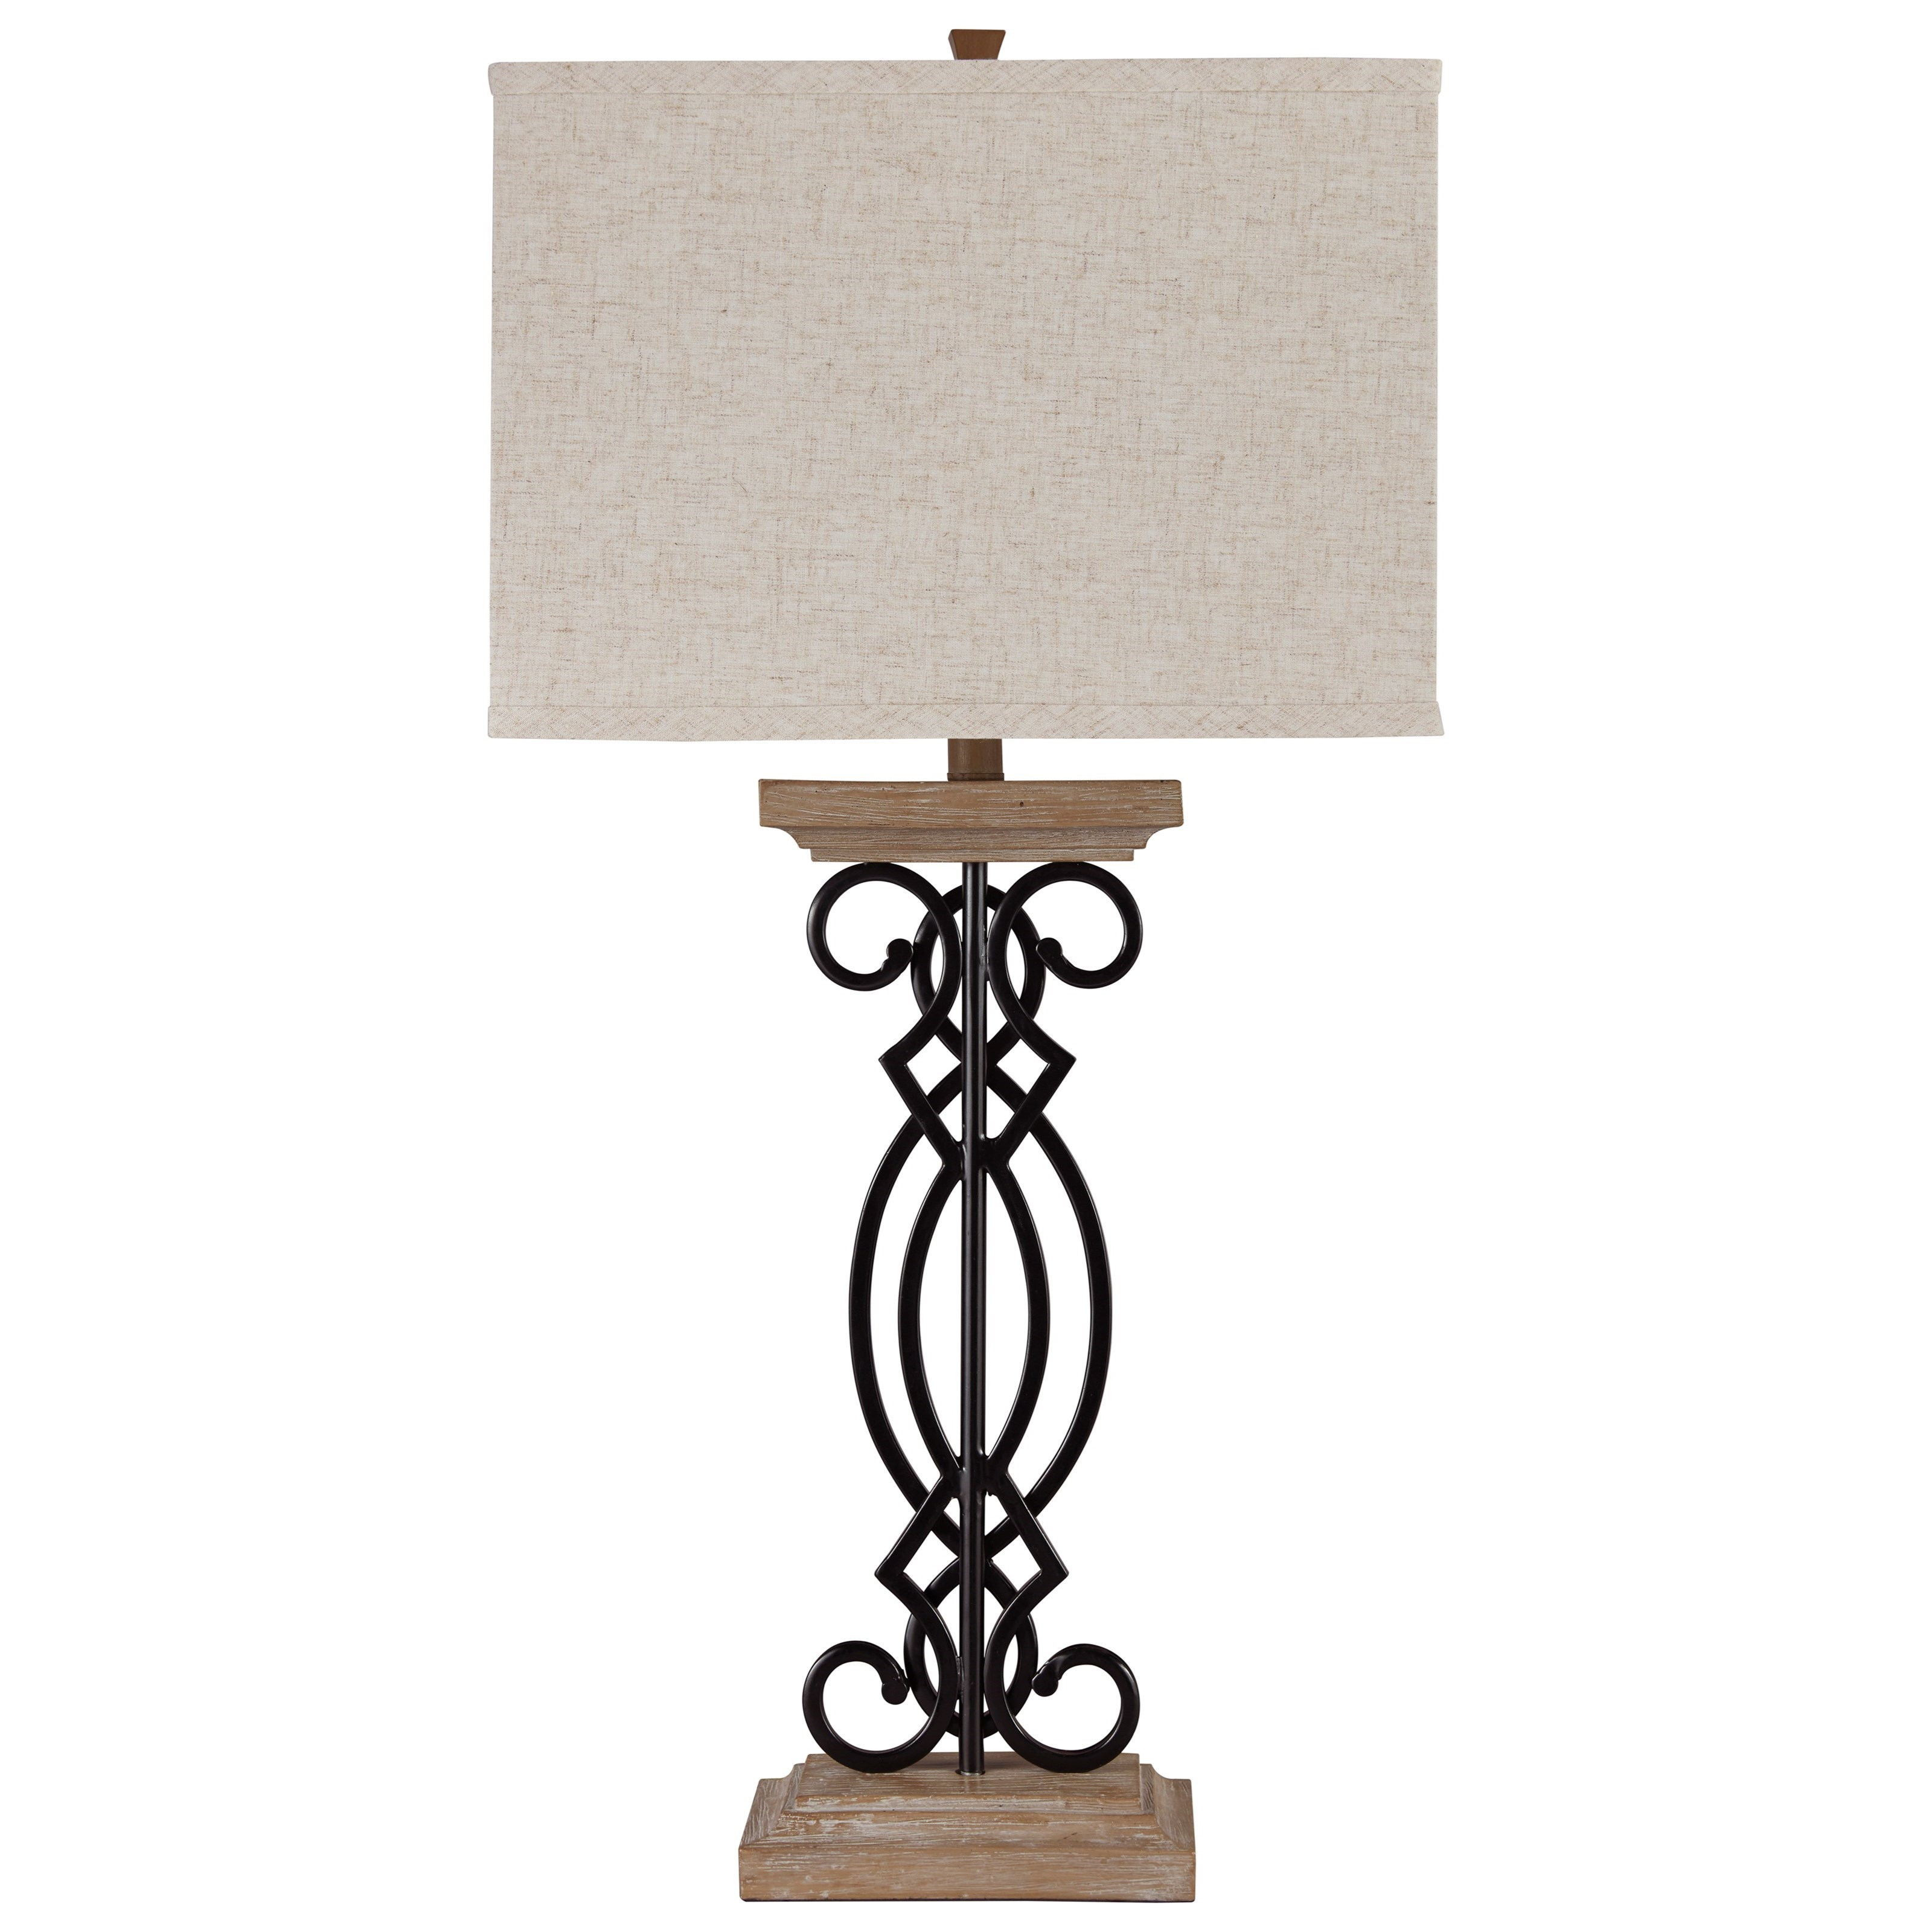 Set of 2 Edalene Metal Table Lamps